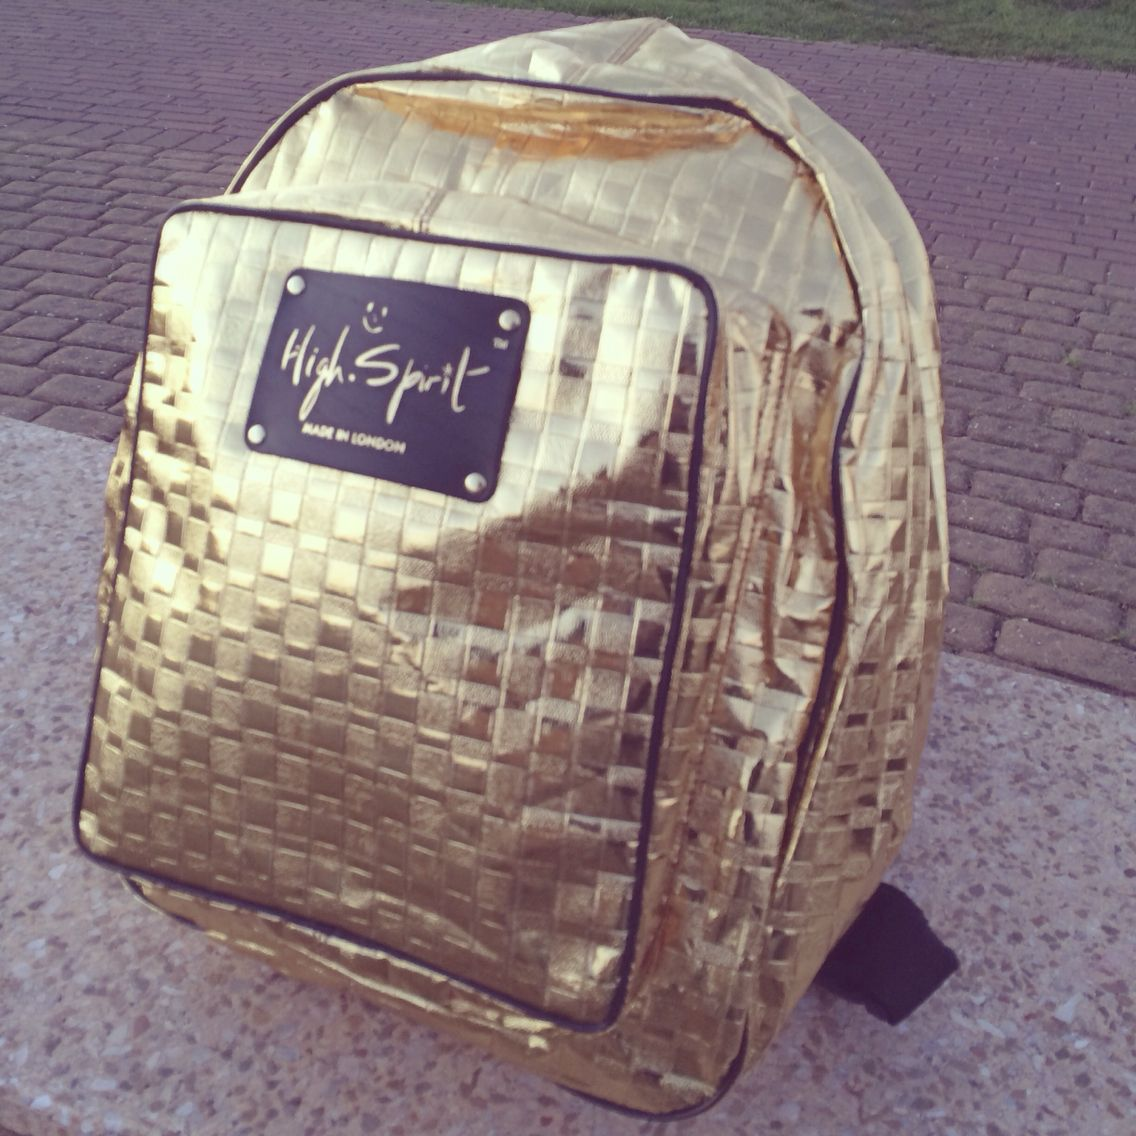 NEW Design called Gold Mine will be available on www.highspiritbags.com very soon! :-) #highspirit #highspiritbag #bag #backpack #theftproofbag #theftproof #style #stylish #unicorn #unique #instafashion #shopping #love #chic #london #worldwide #accessory #accessories #travel #seetheworld #shine #celfie #design #gold #glam #sparkly